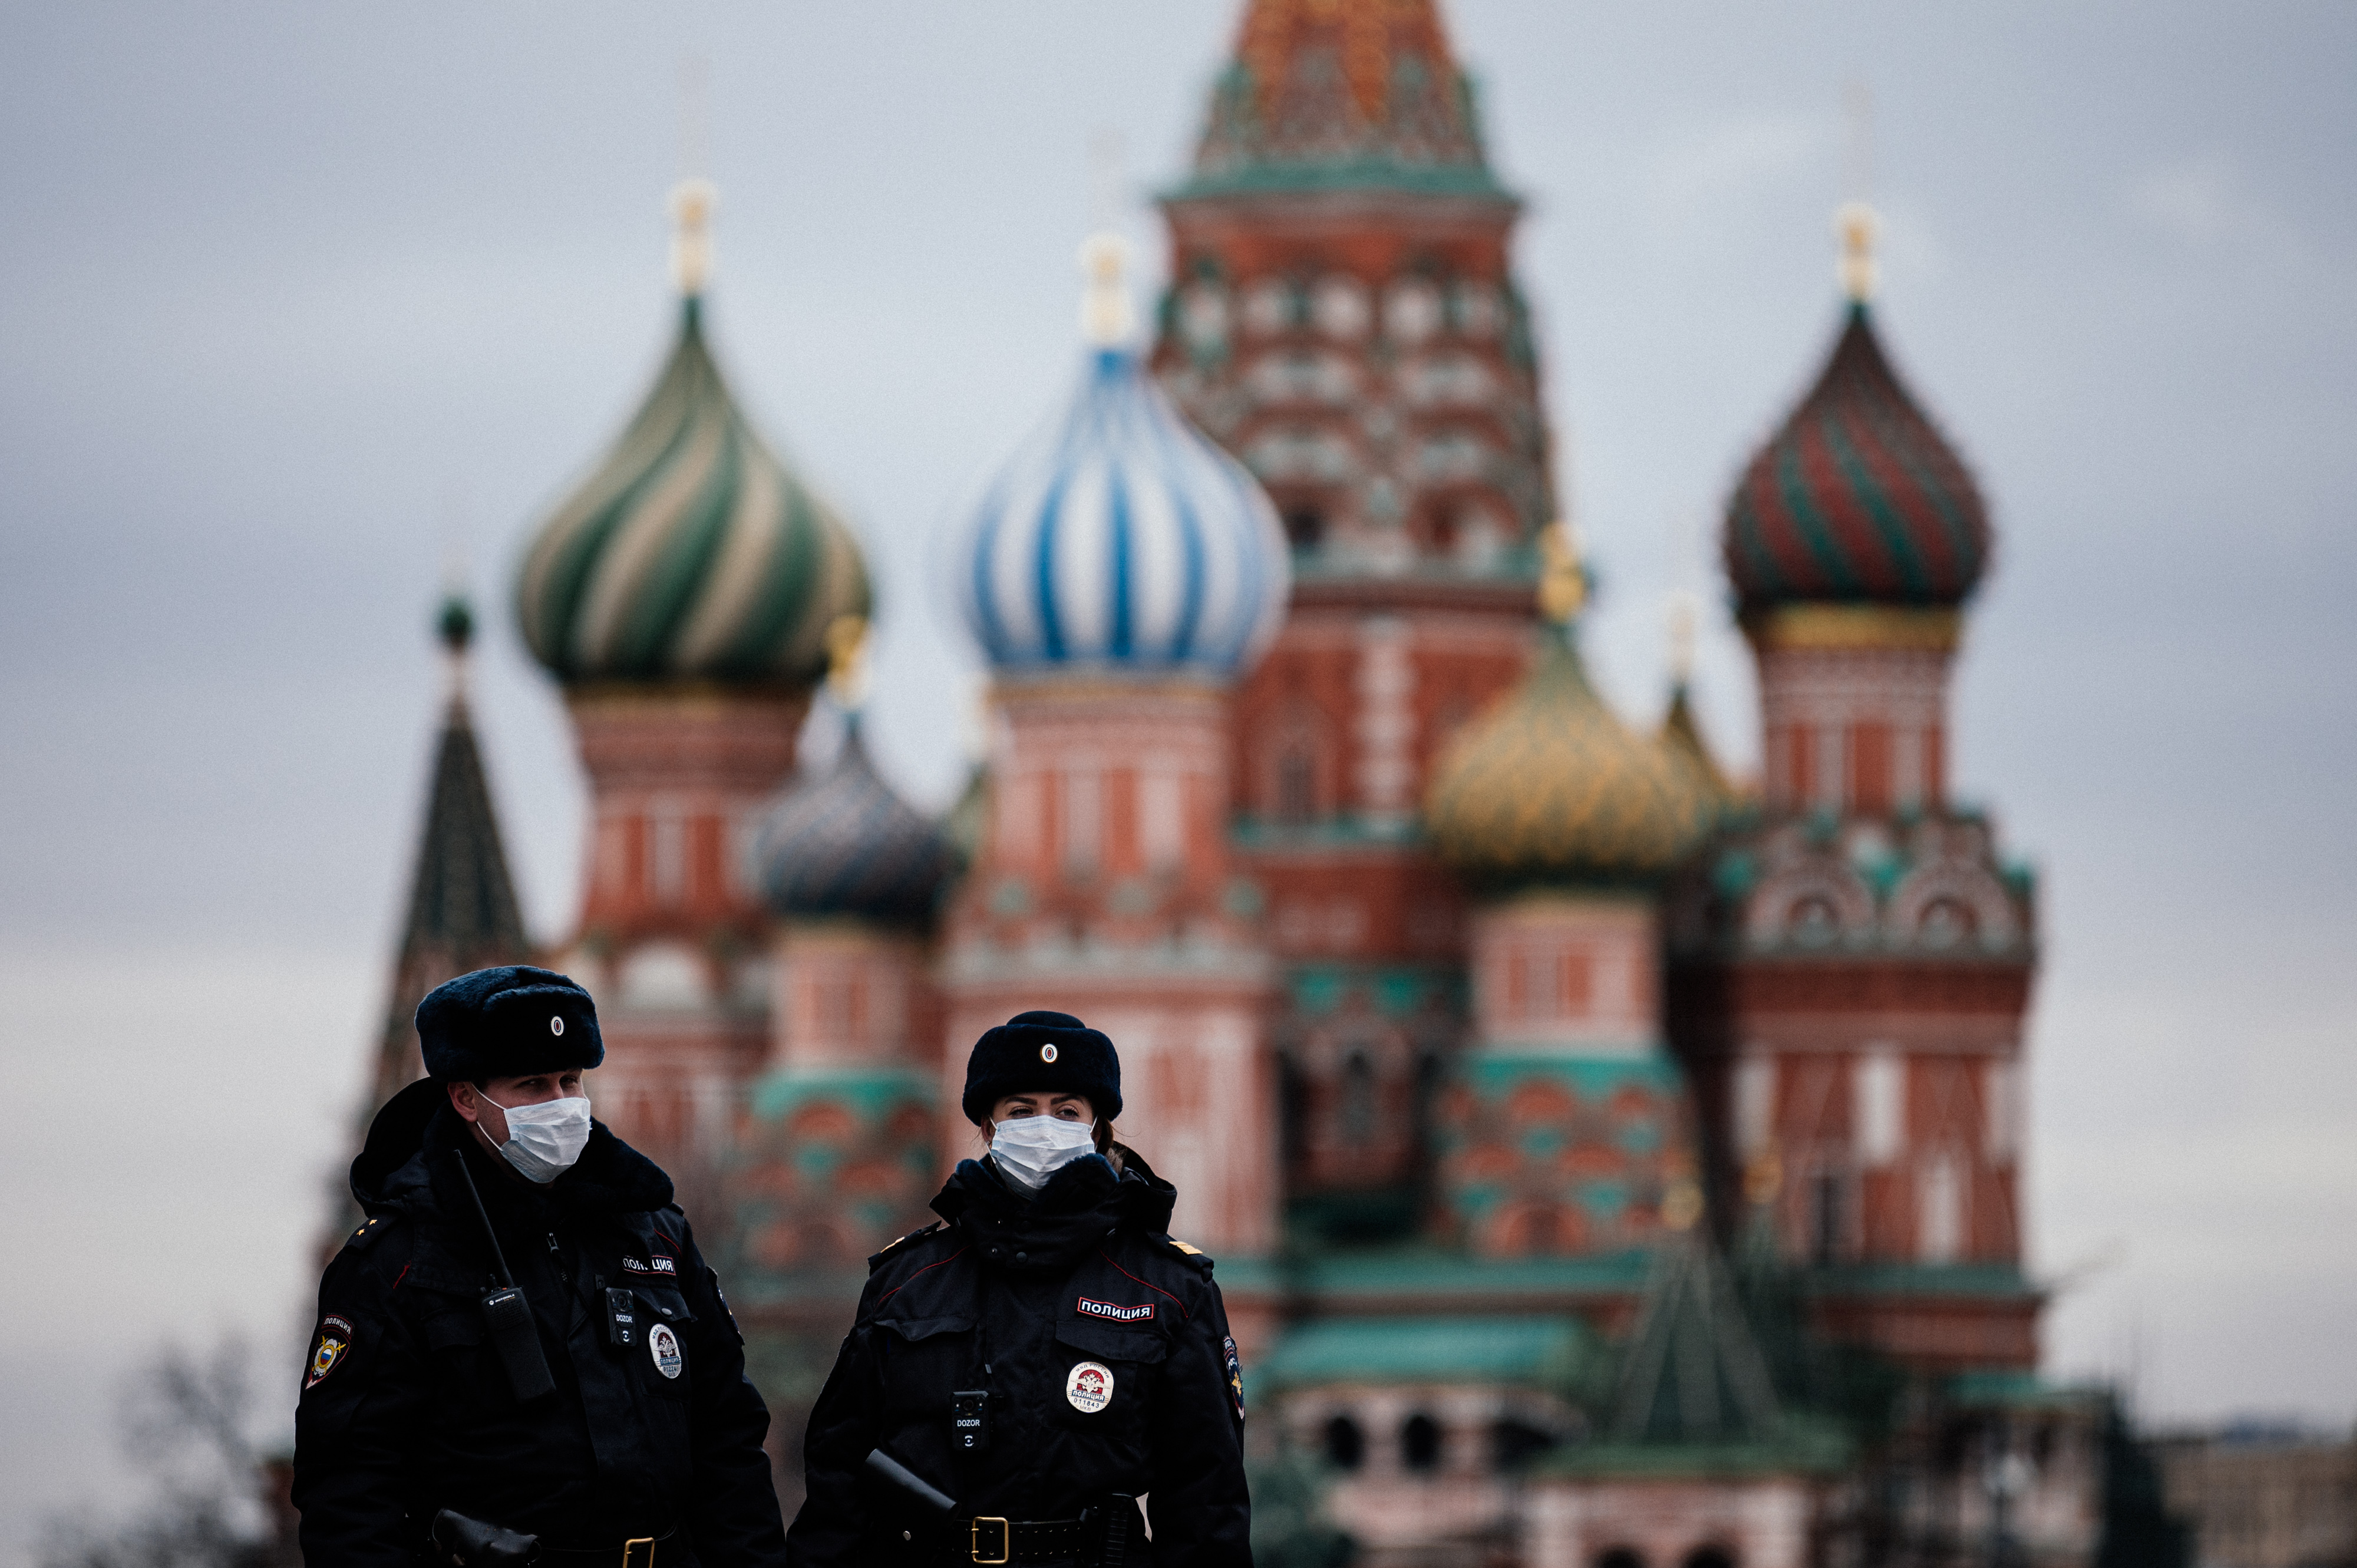 Russian police officers patrol the deserted Red square in front of Saint Basil's Cathedral in Moscow on Monday, March 30, as the city and its surrounding regions imposed lockdowns.